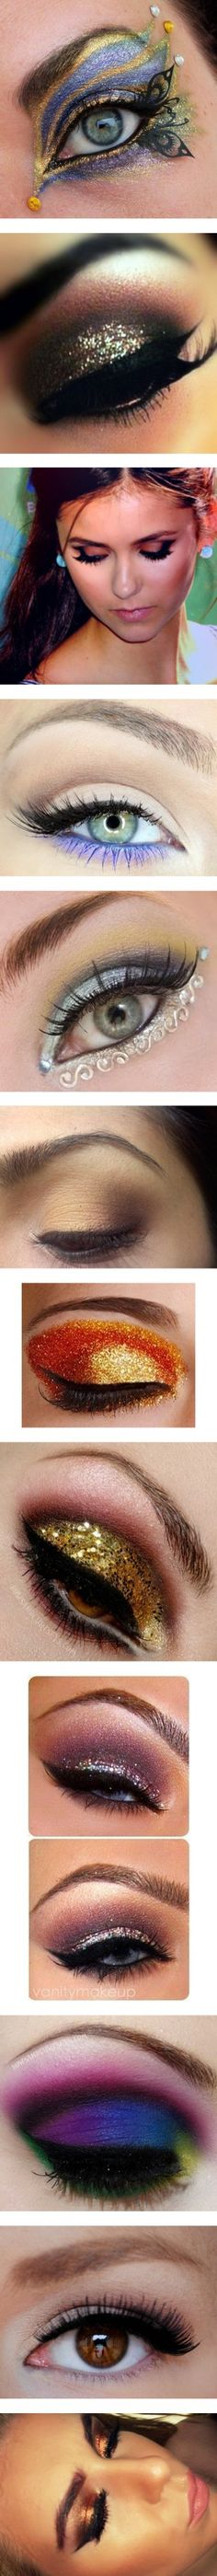 """""""Eyeshadow 3"""" by bluelover25 ❤ liked on Polyvore"""